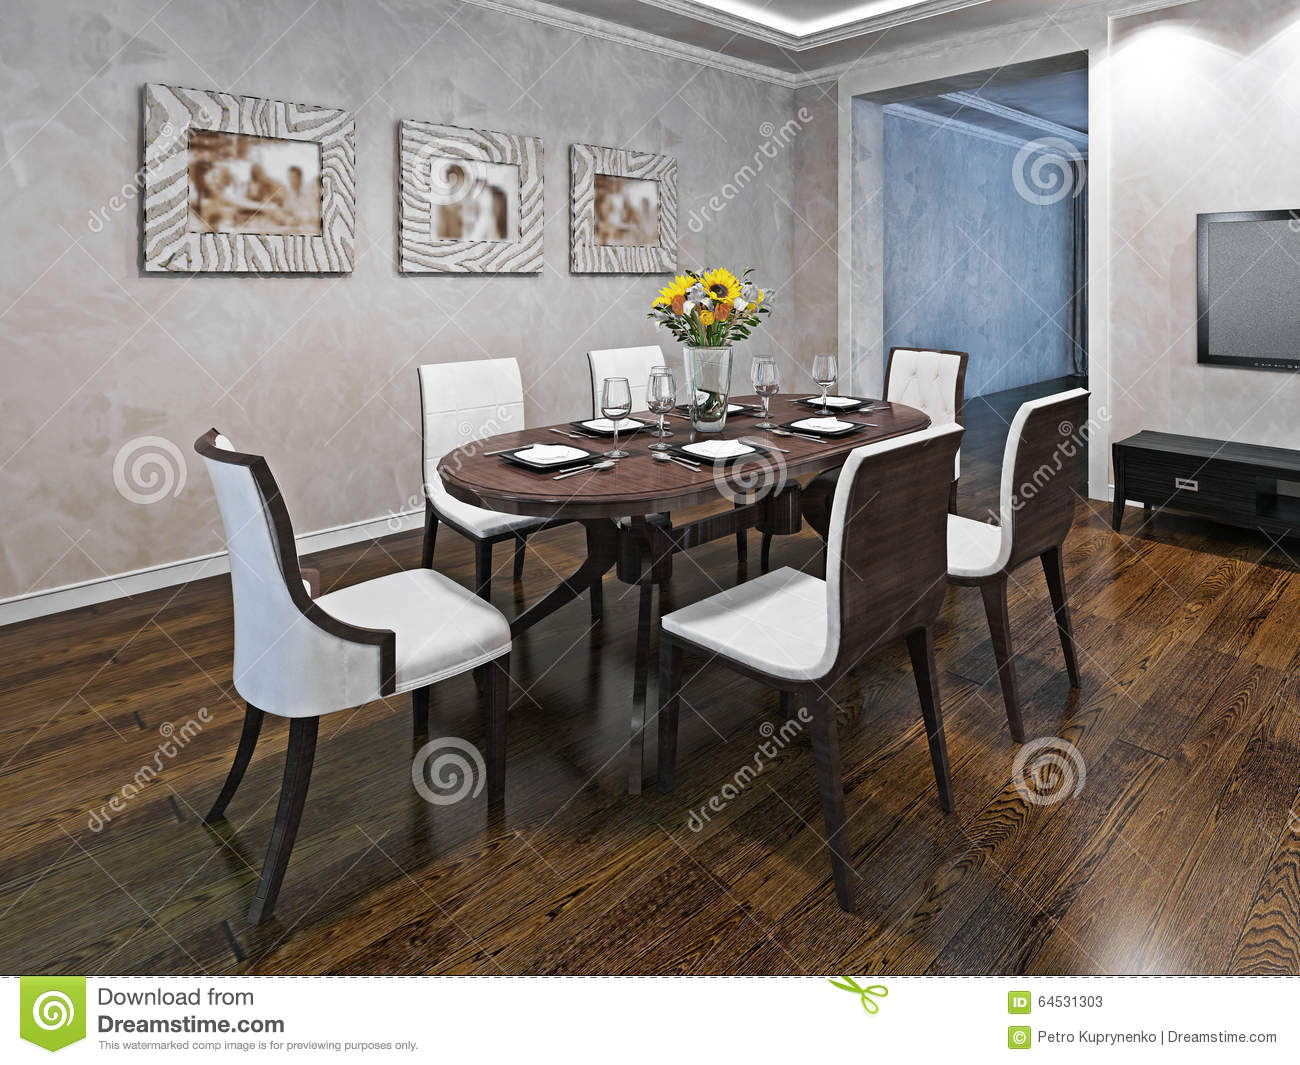 Oval dining table for six person stock image image 64531303 for Dining room table 6 person